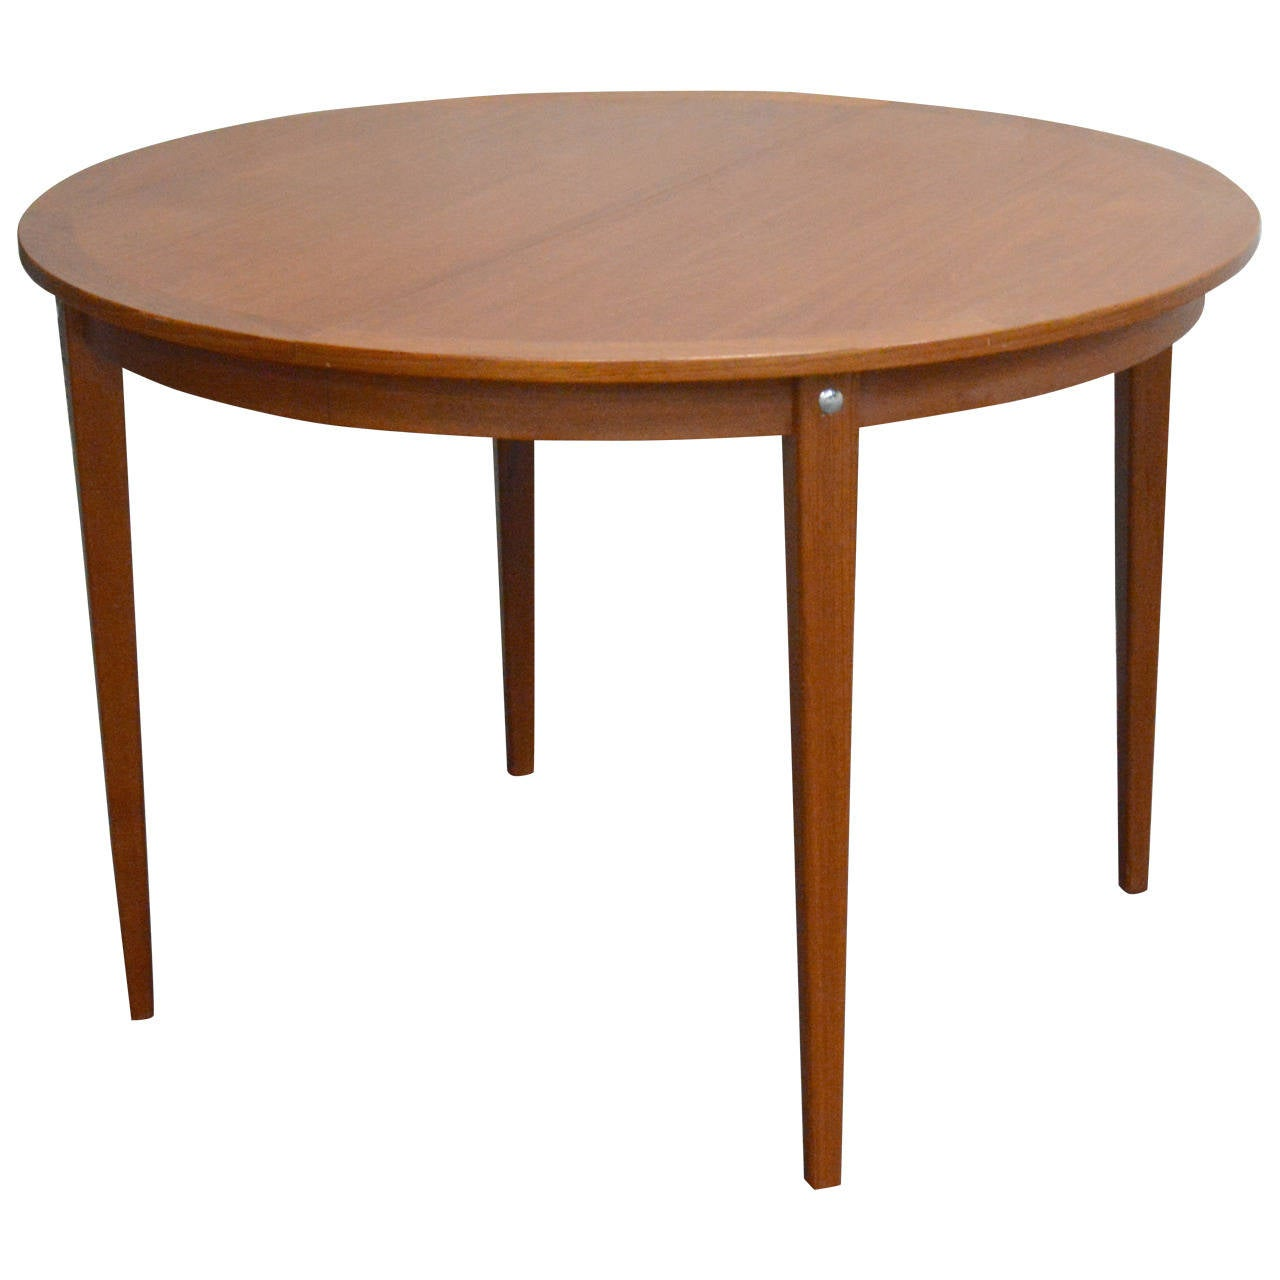 Mid century modern round swedish teak dining table at 1stdibs for Modern dining room table